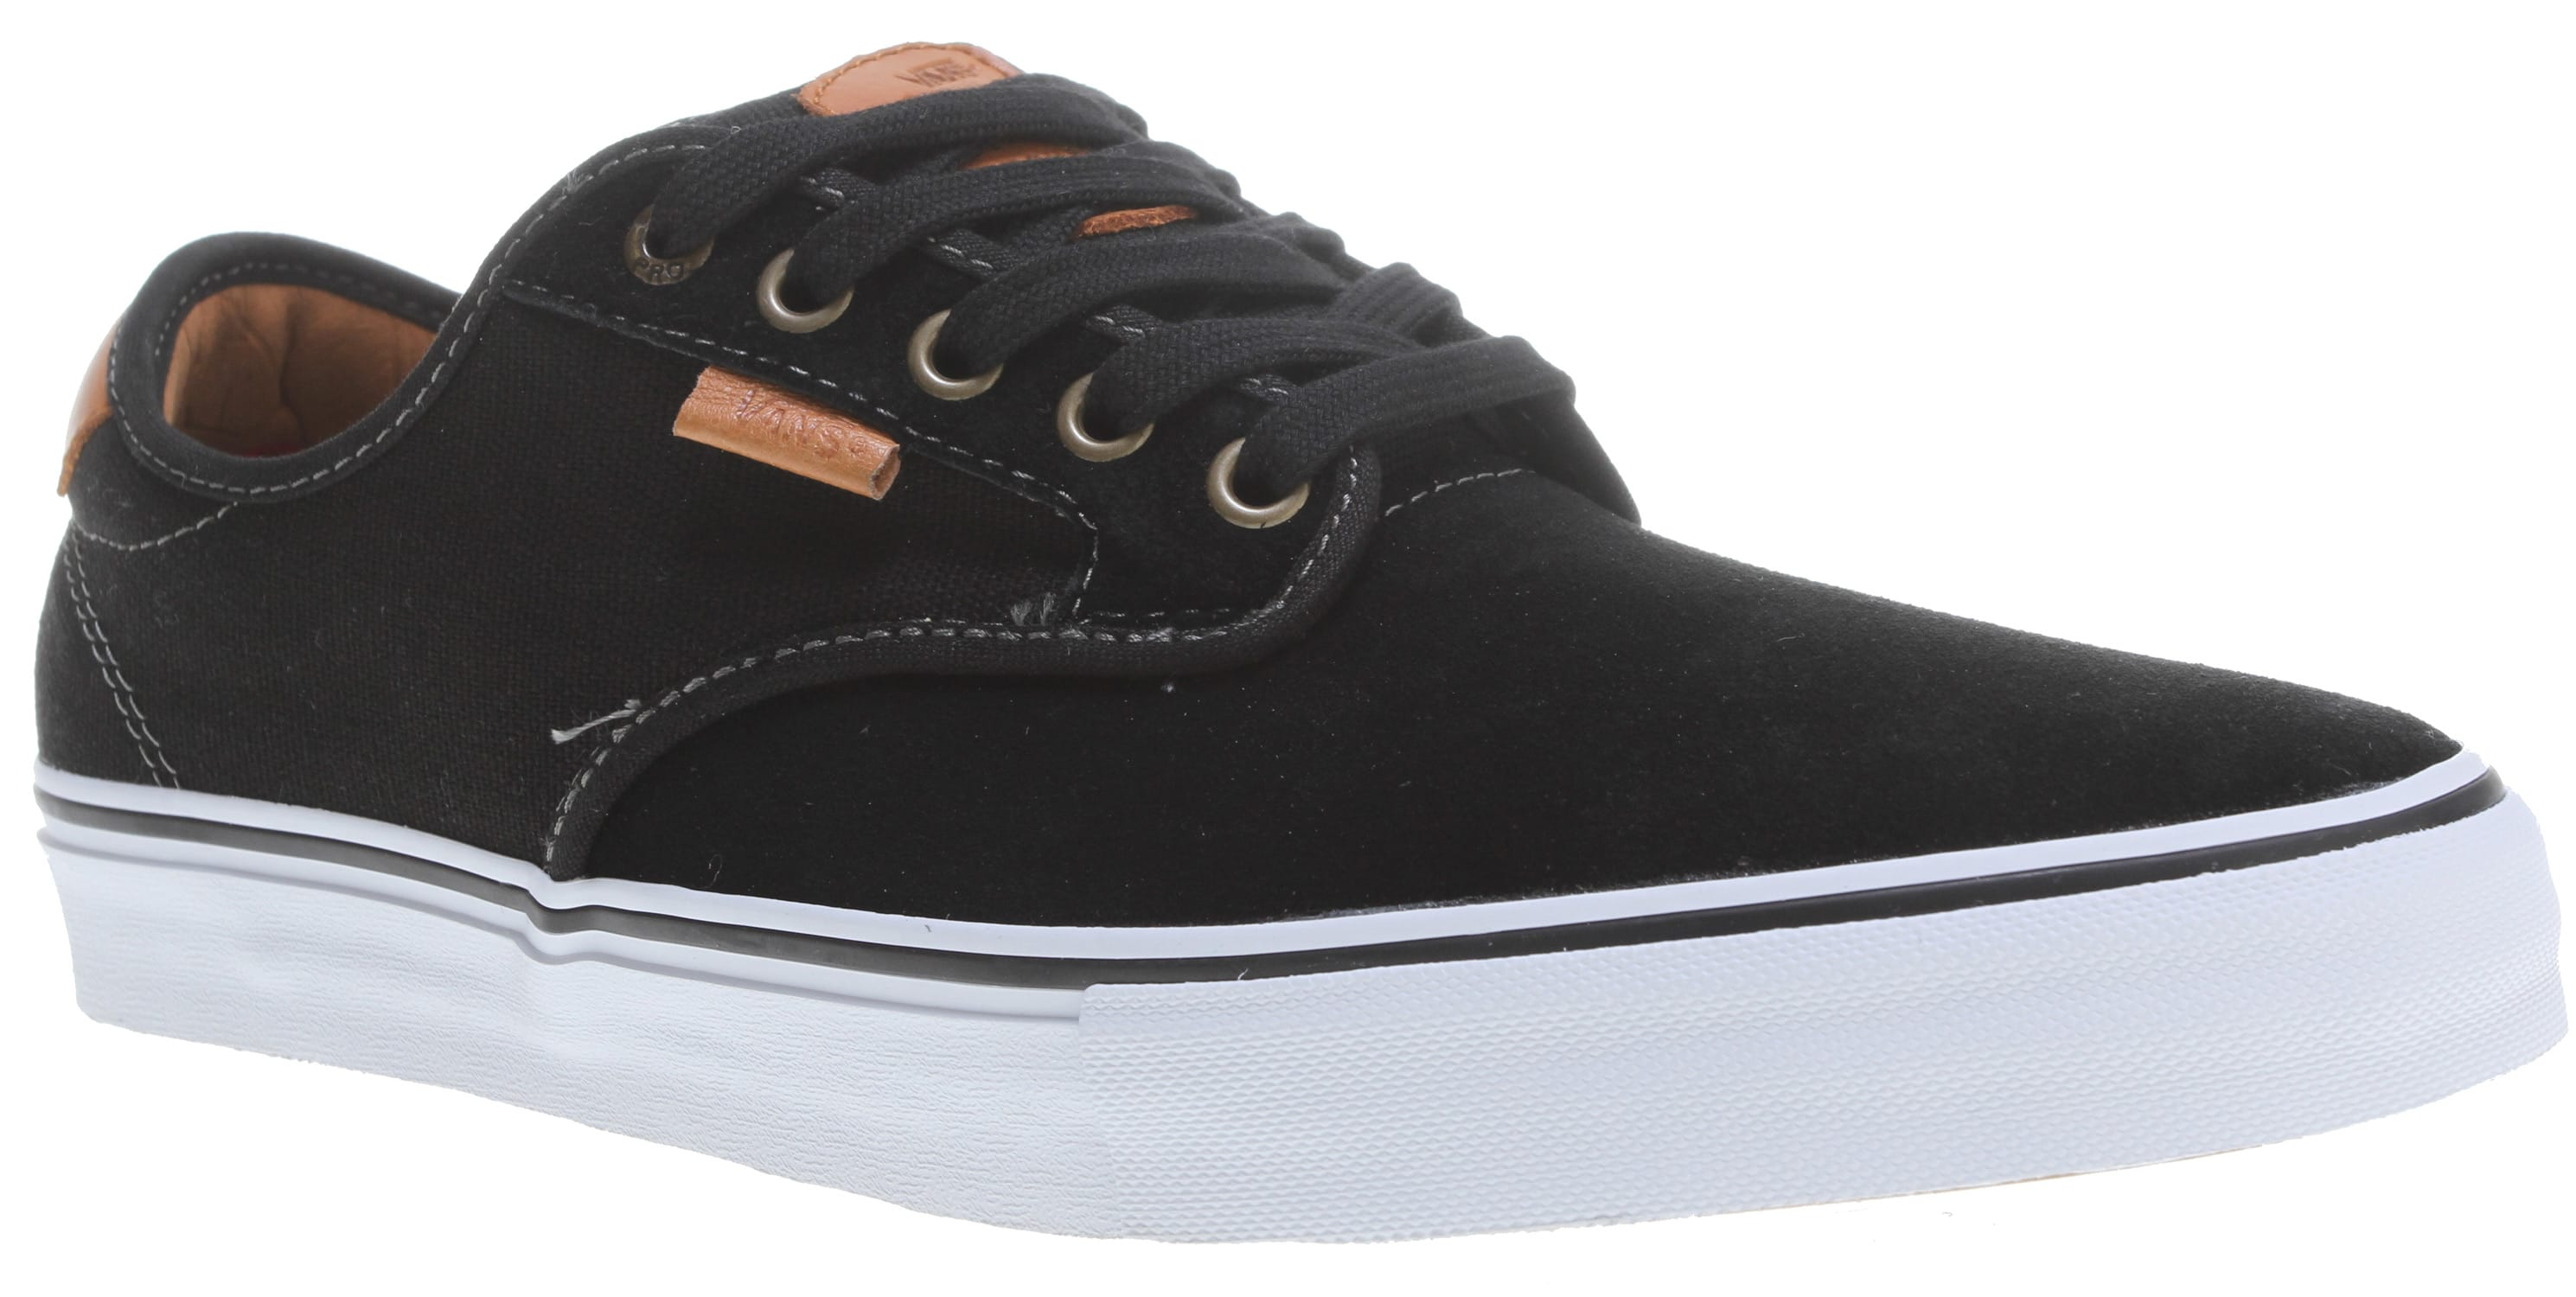 On Sale Vans Chima Pro Skate Shoes up to 60% off